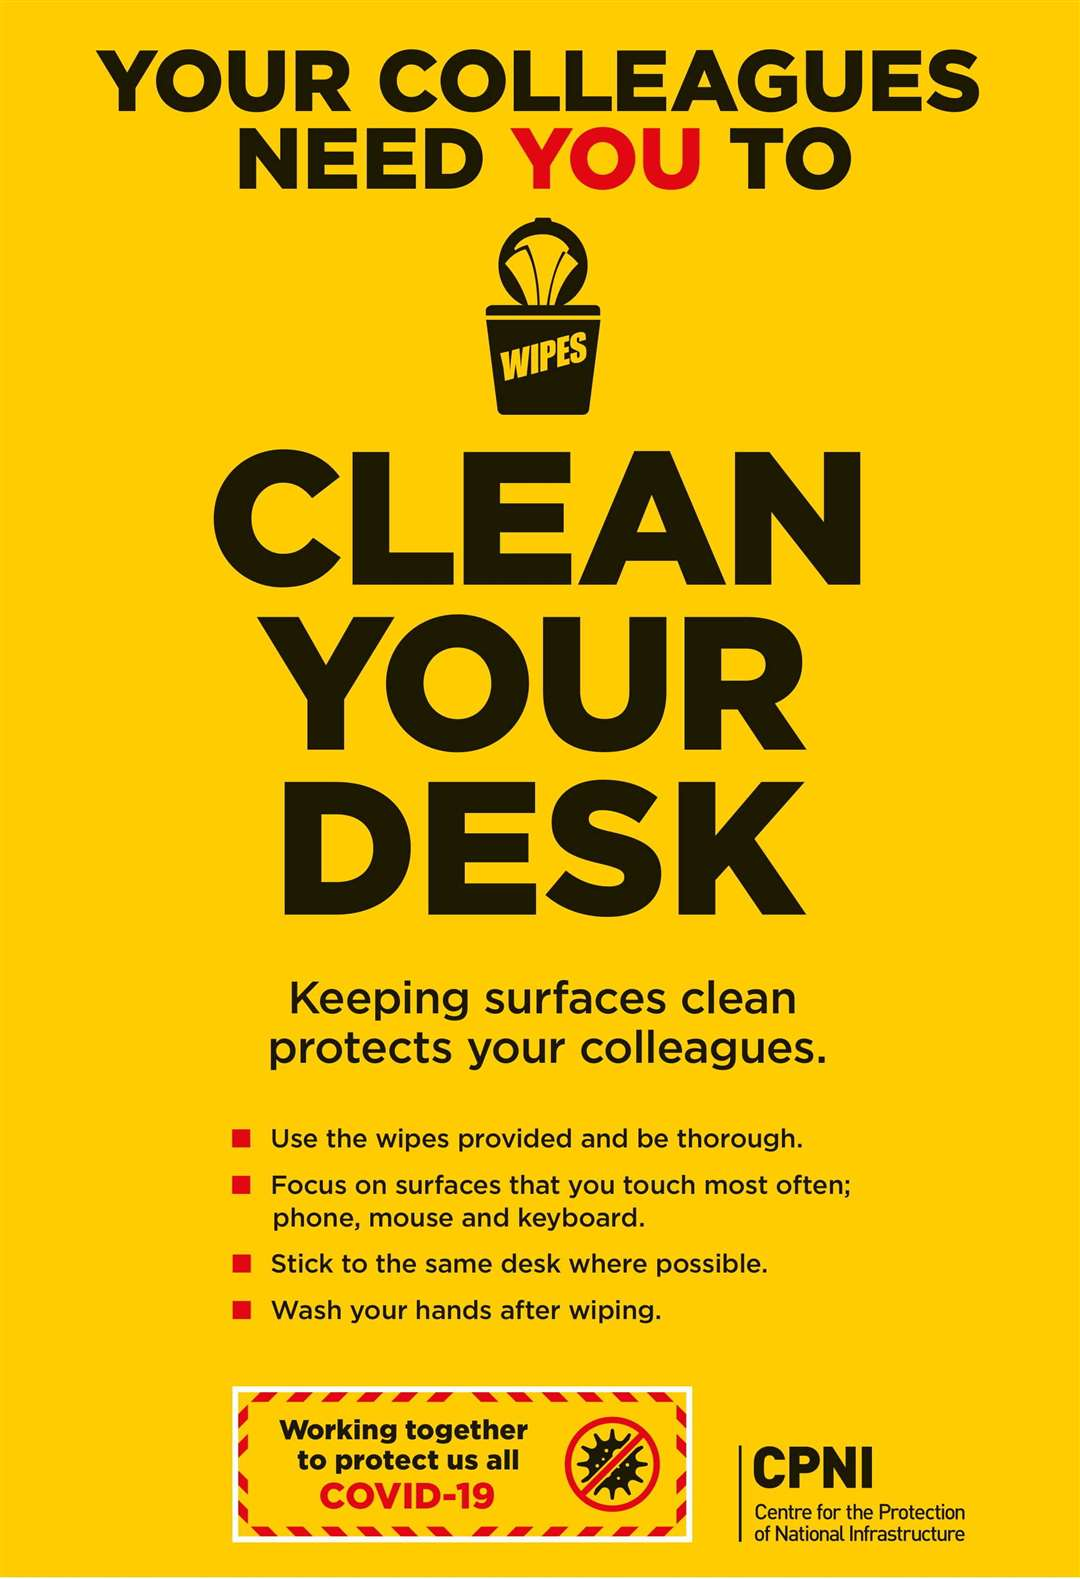 One of the advice posters calls on workers to clean their desks thoroughly